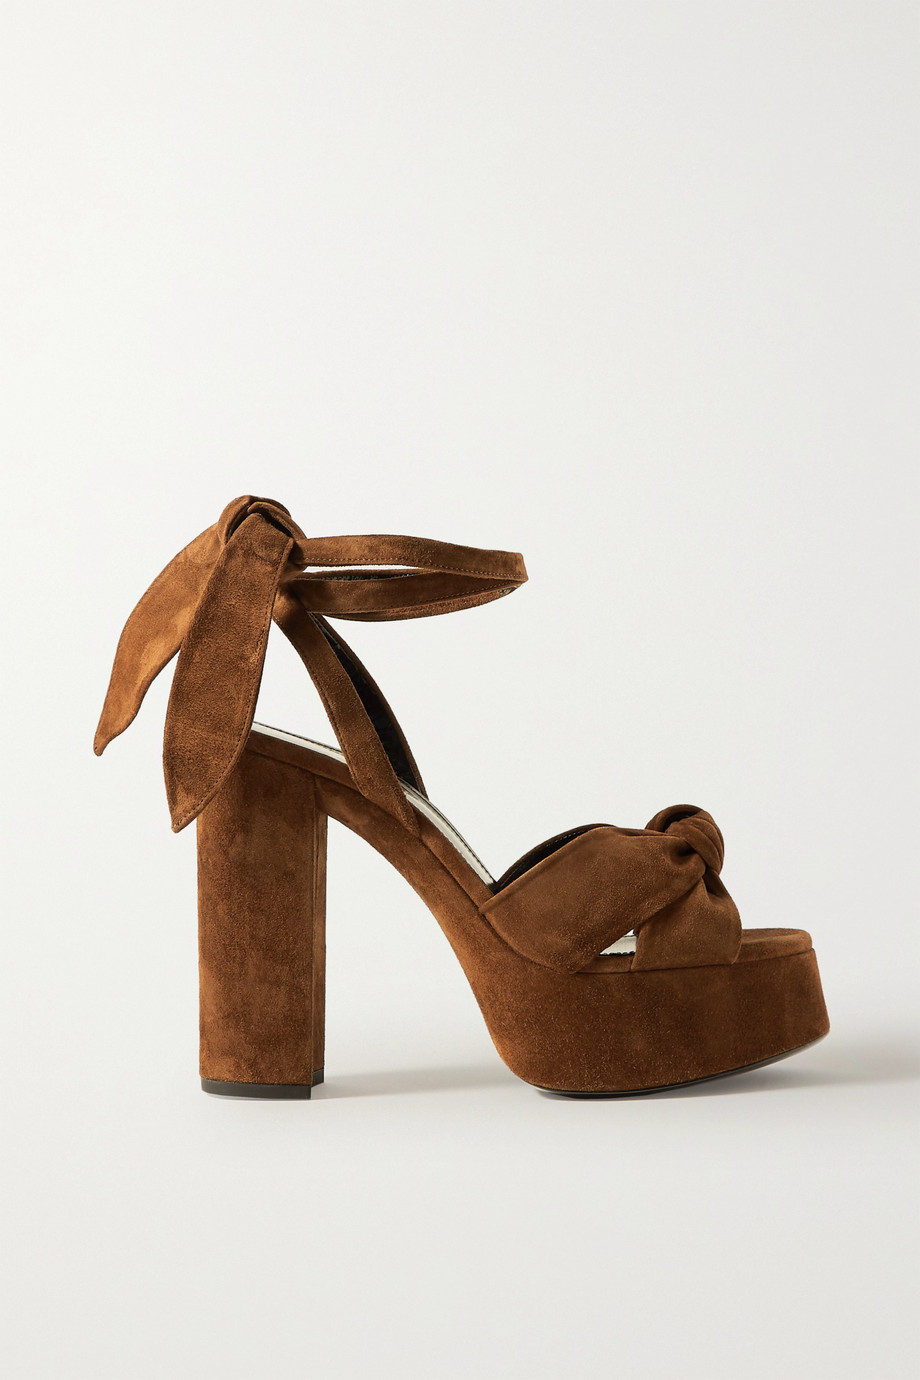 SAINT LAURENT Bianca knotted suede platform sandals